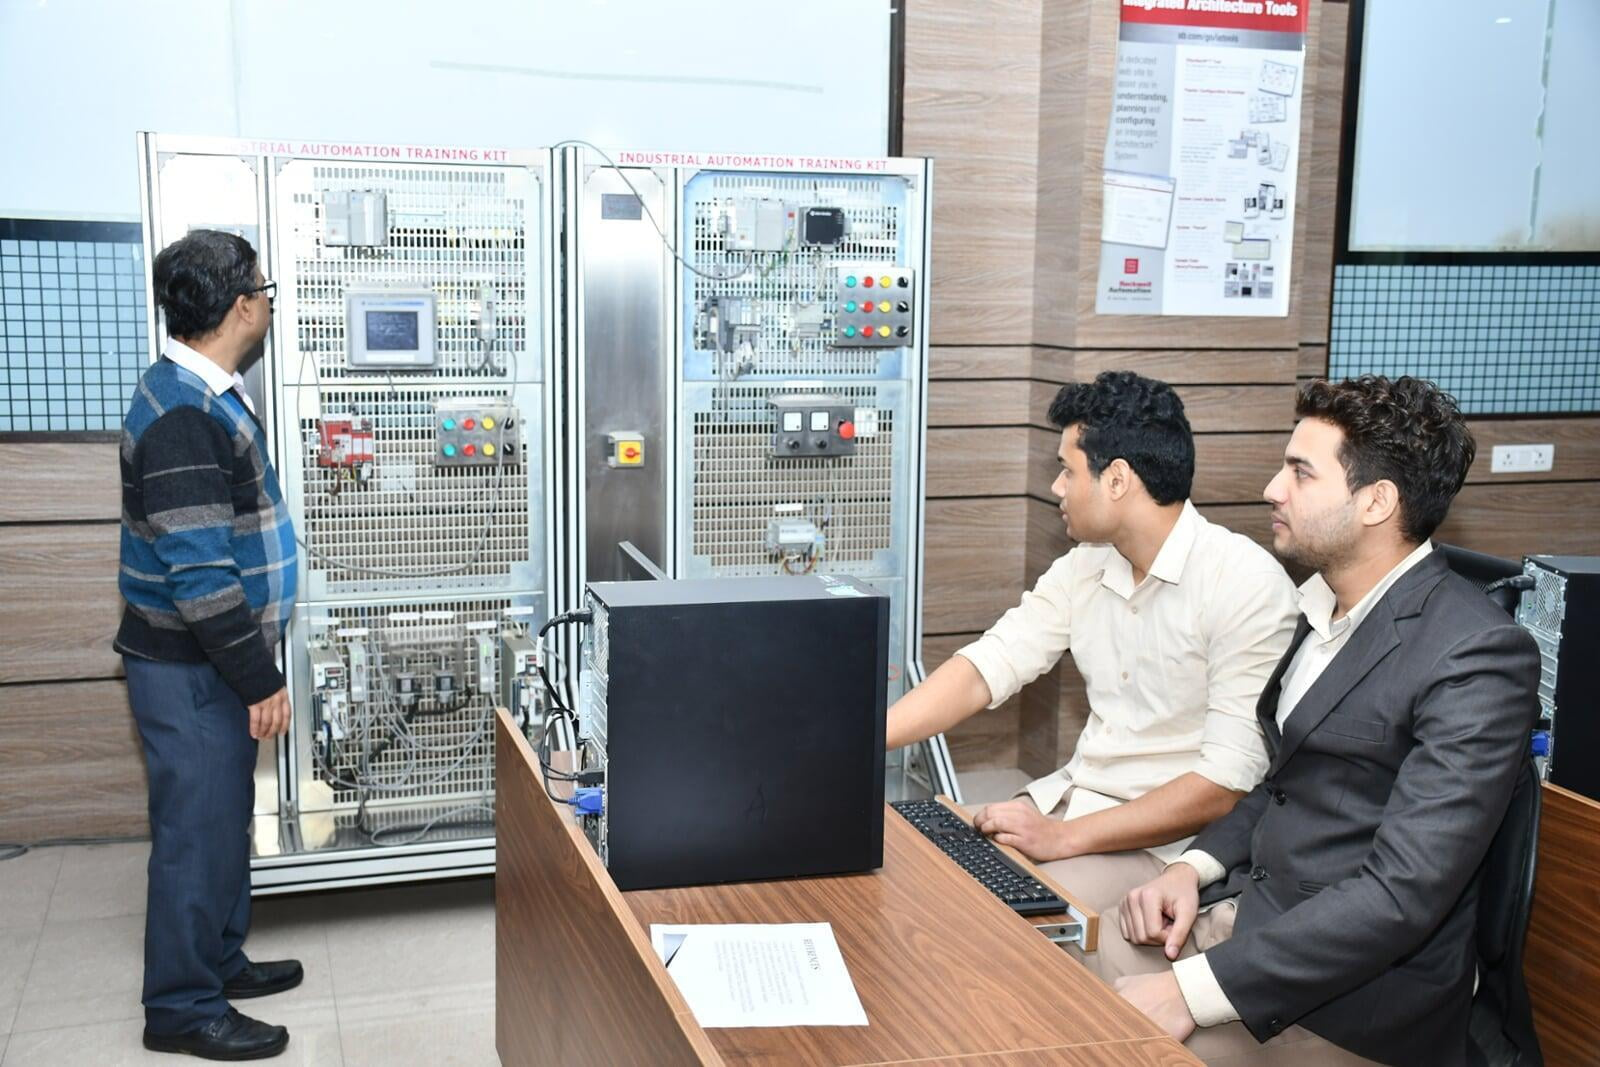 ITS Rockwell Automation Lab 1  with students